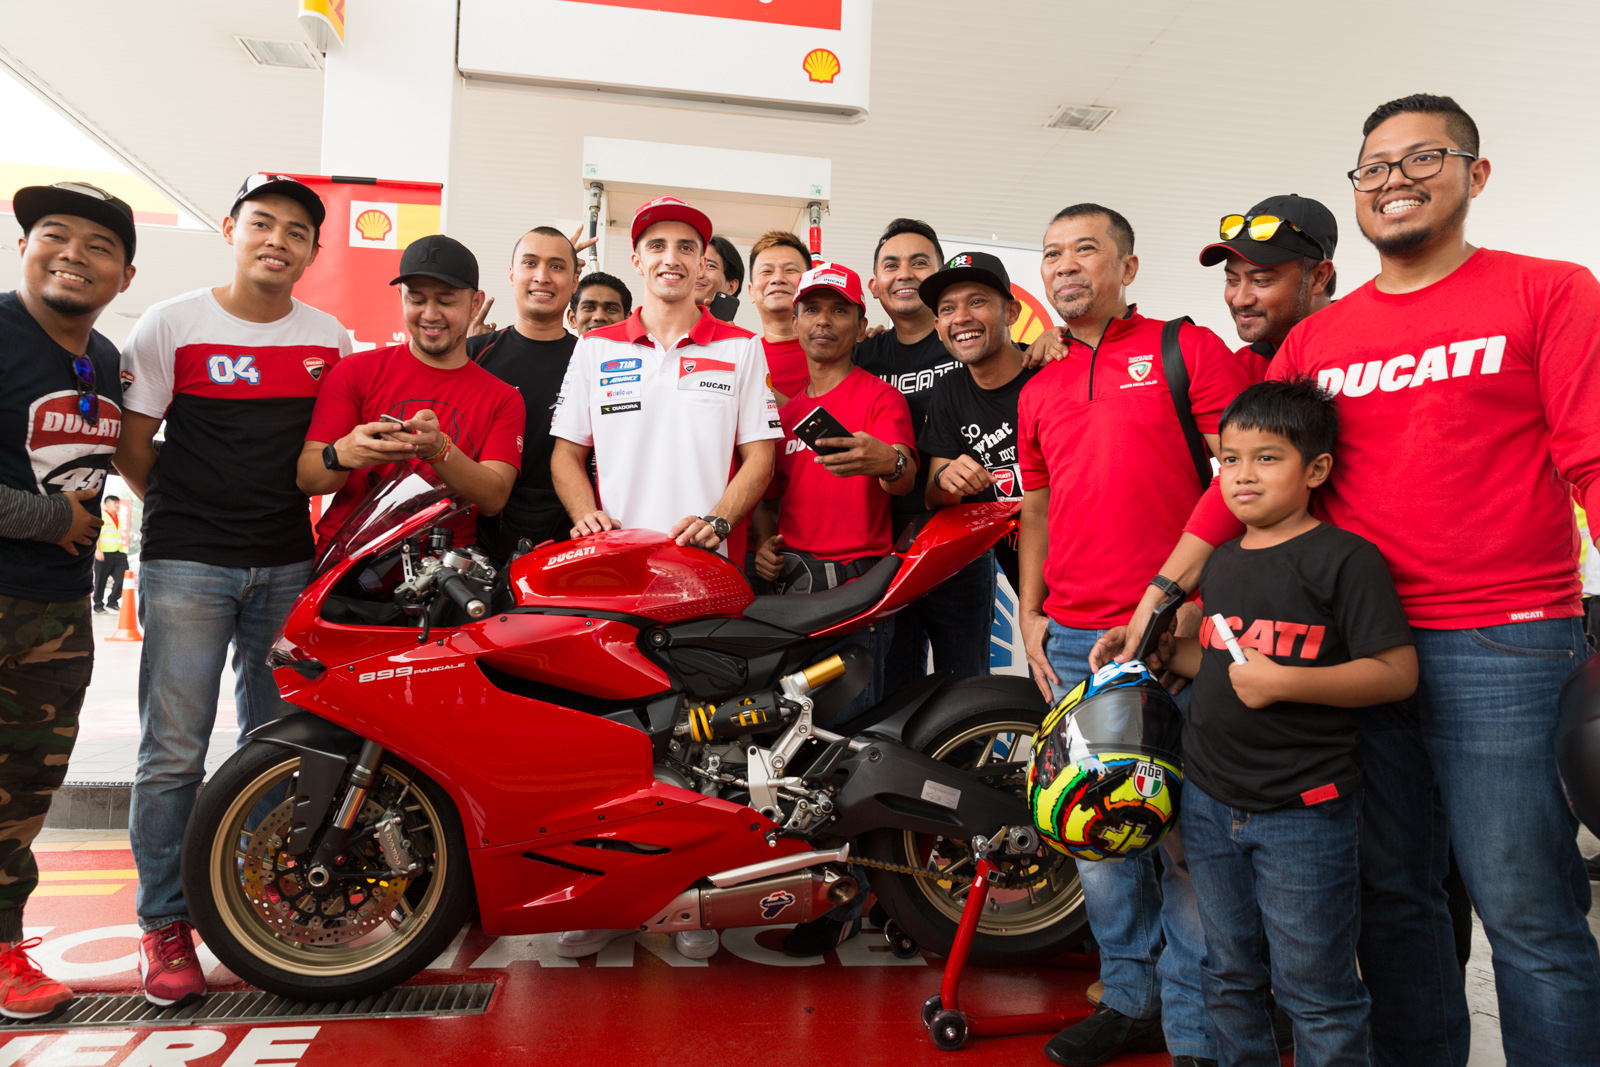 Shell e Ducati: evento in Malesia